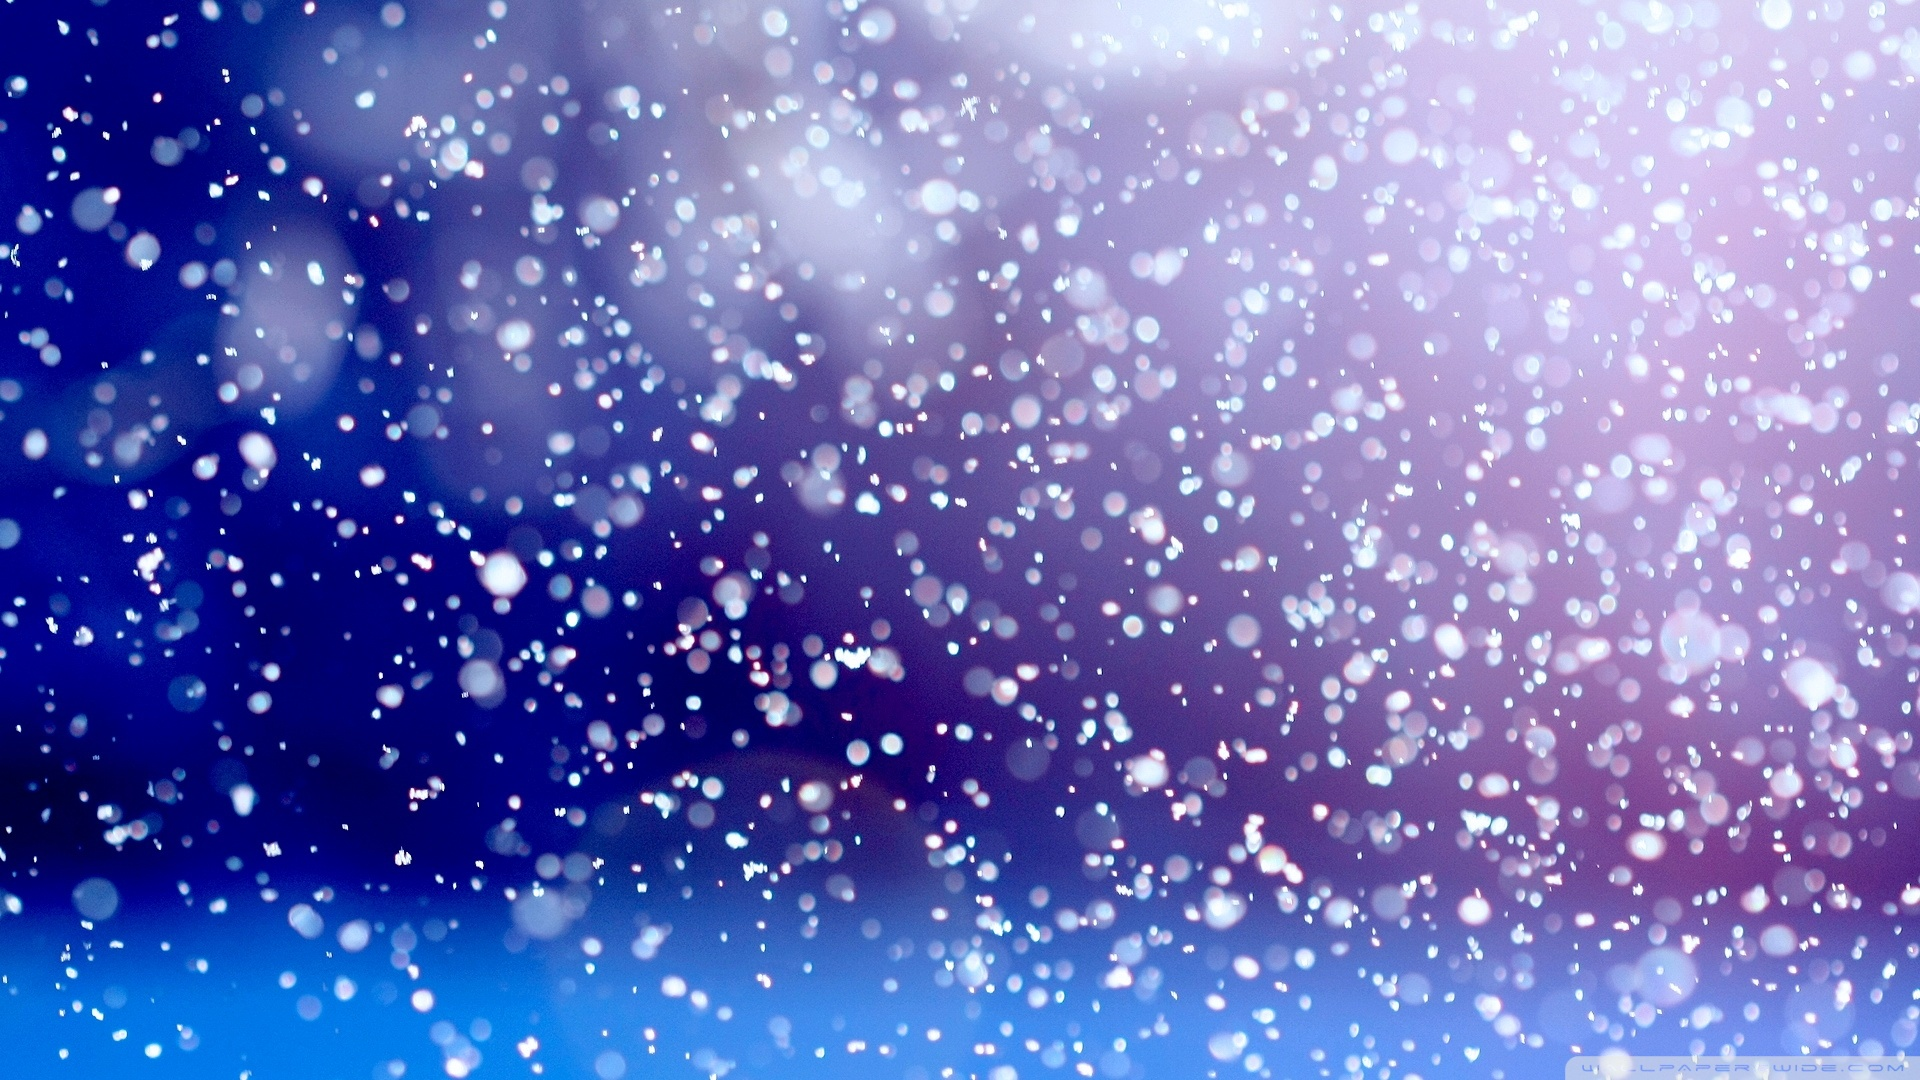 Animated Snow Backgrounds